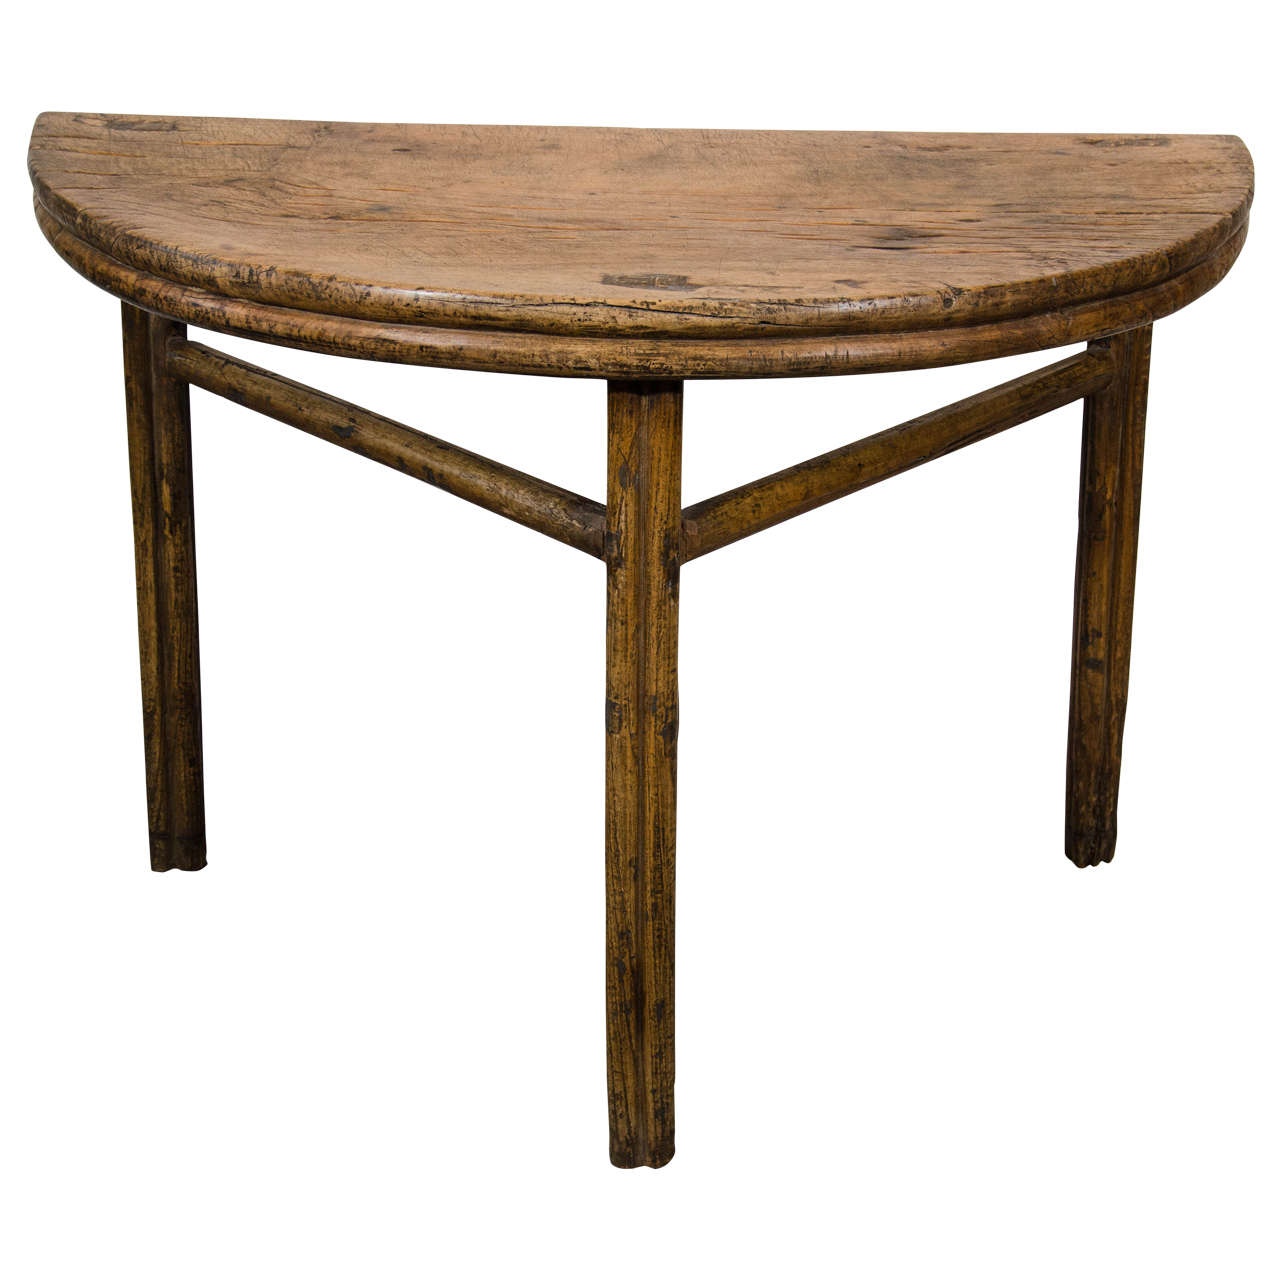 Antique half moon table at 1stdibs for 1 2 moon table